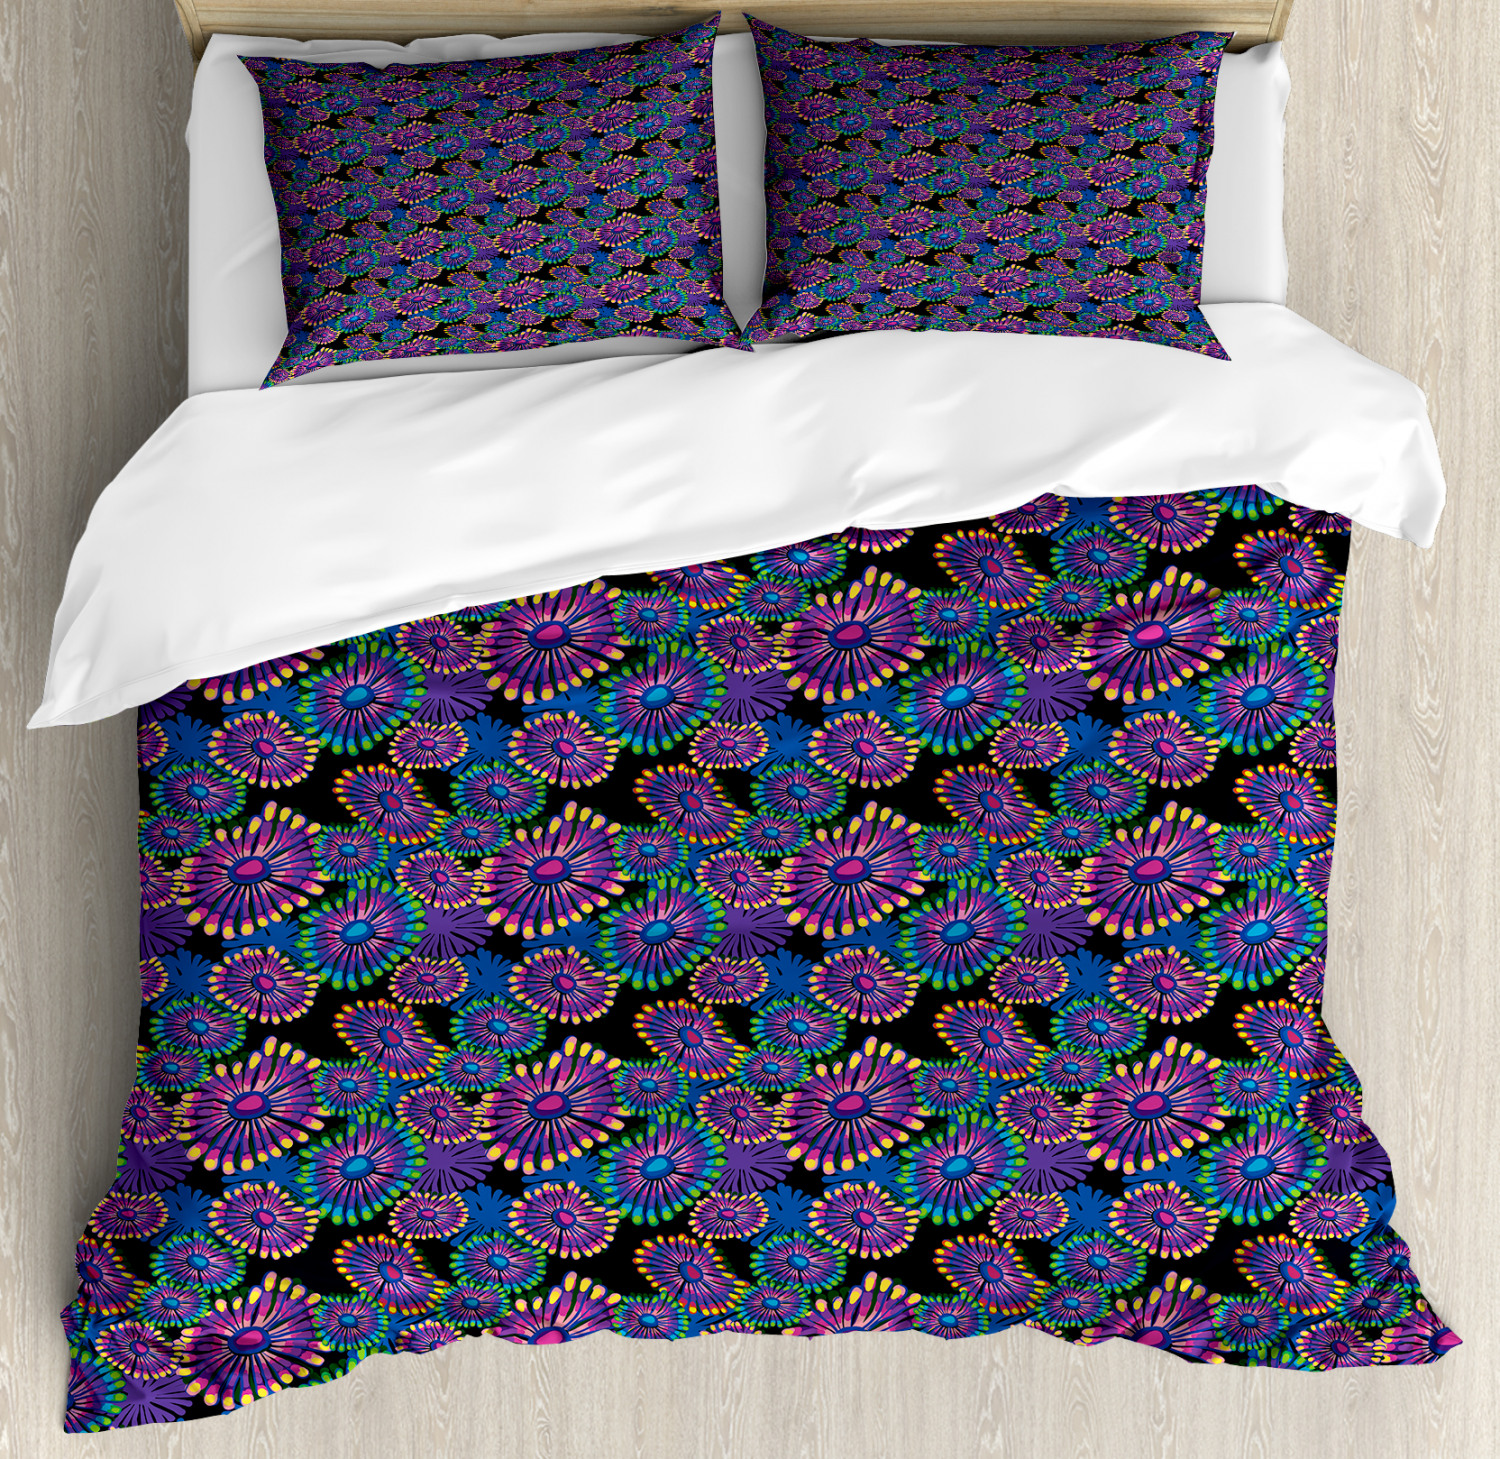 Abstract Duvet Cover Set with Pillow Shams Surreal Expressionism Print